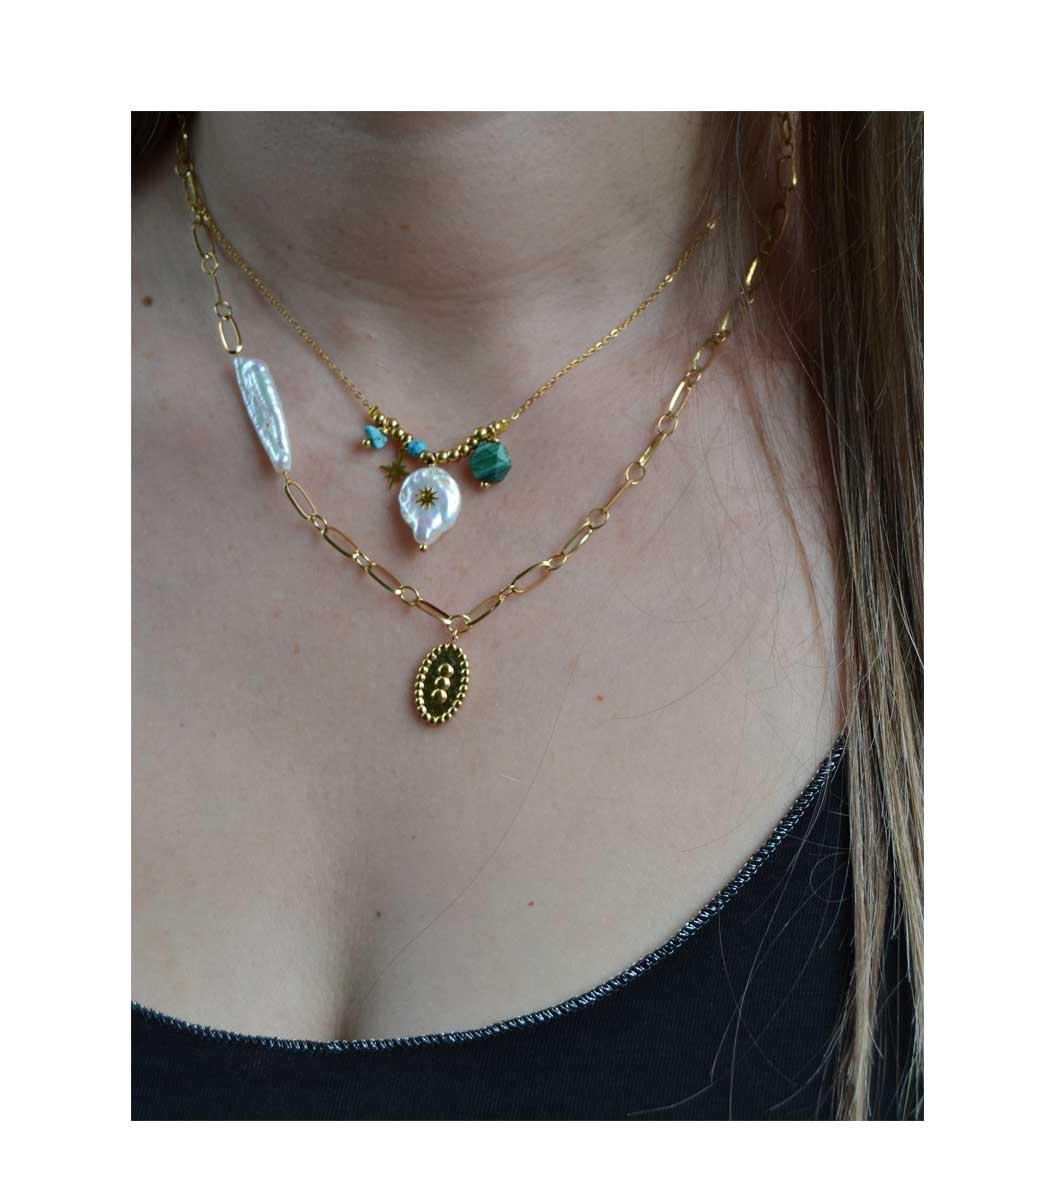 Stainless steel gold pearl charm necklace